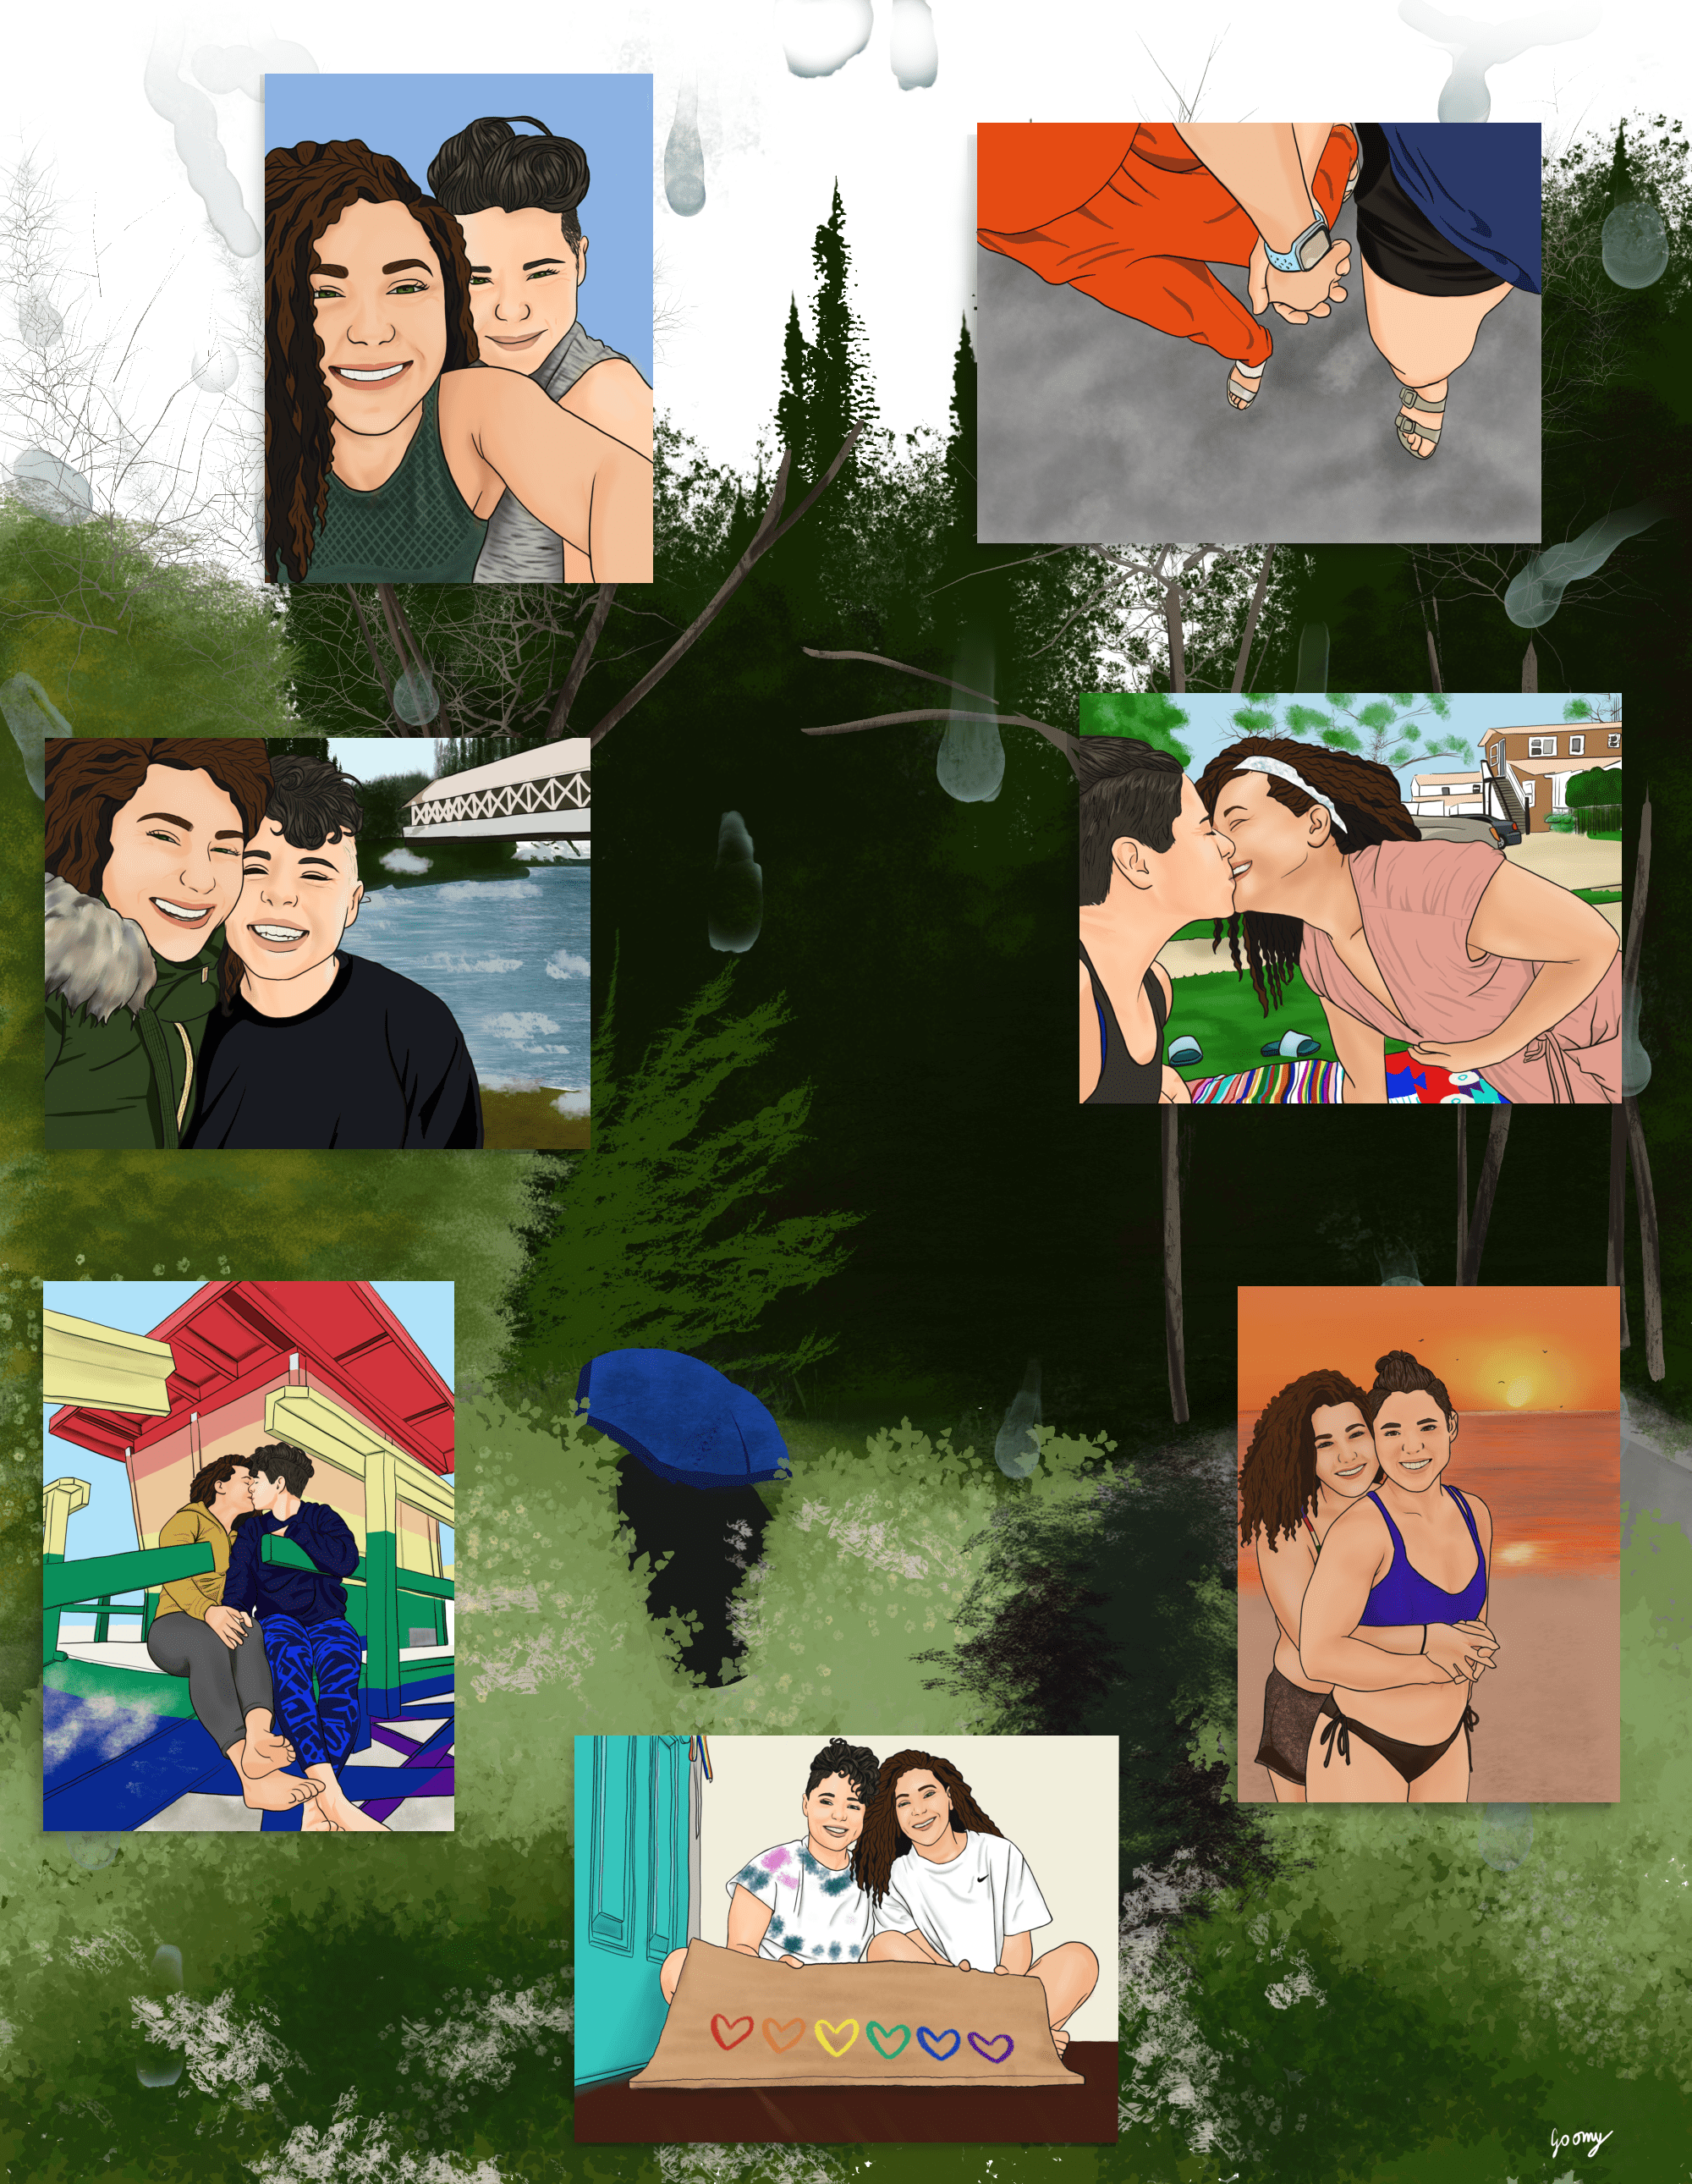 a digital collage of 7 illustrated photos of a lesbian couple over a rainy background